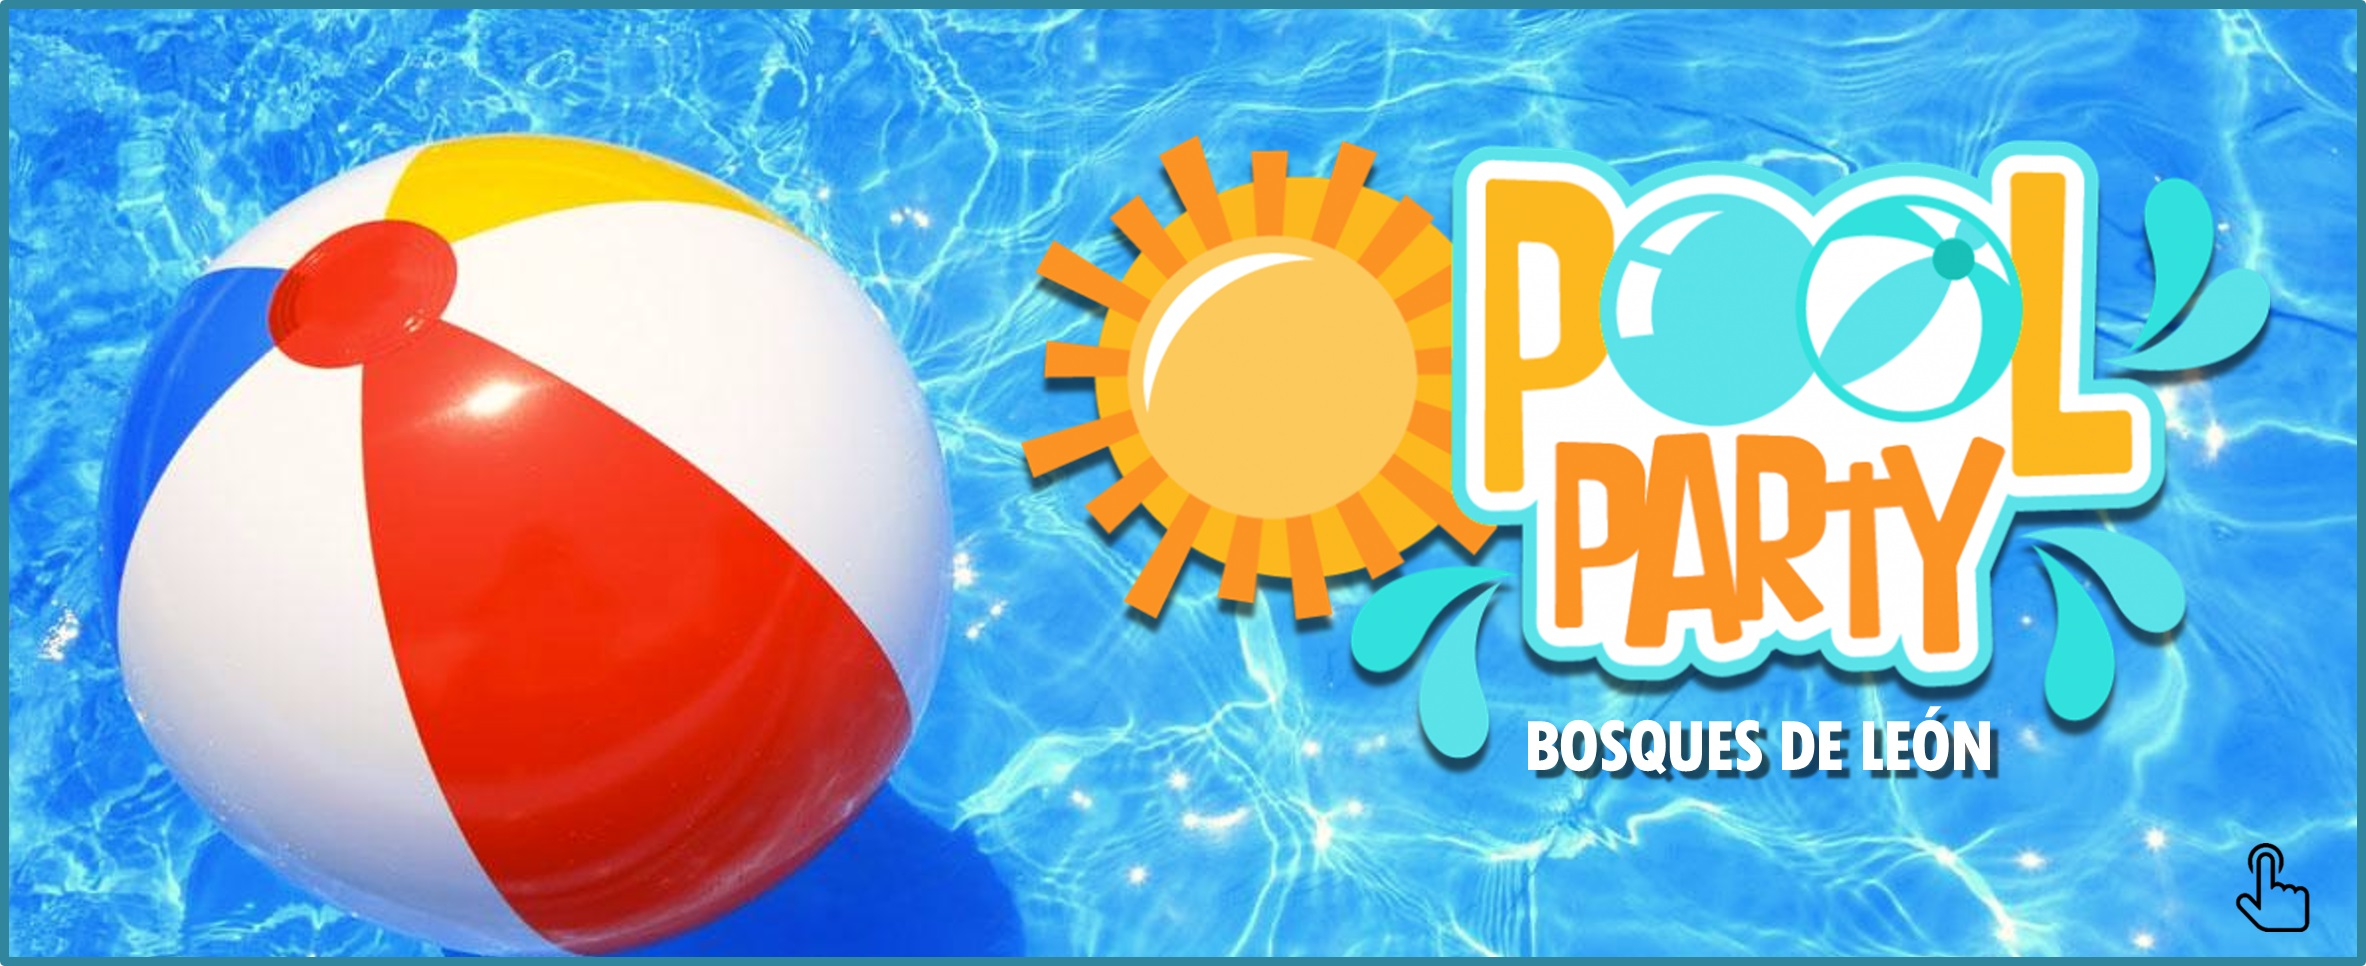 Noticia pool party